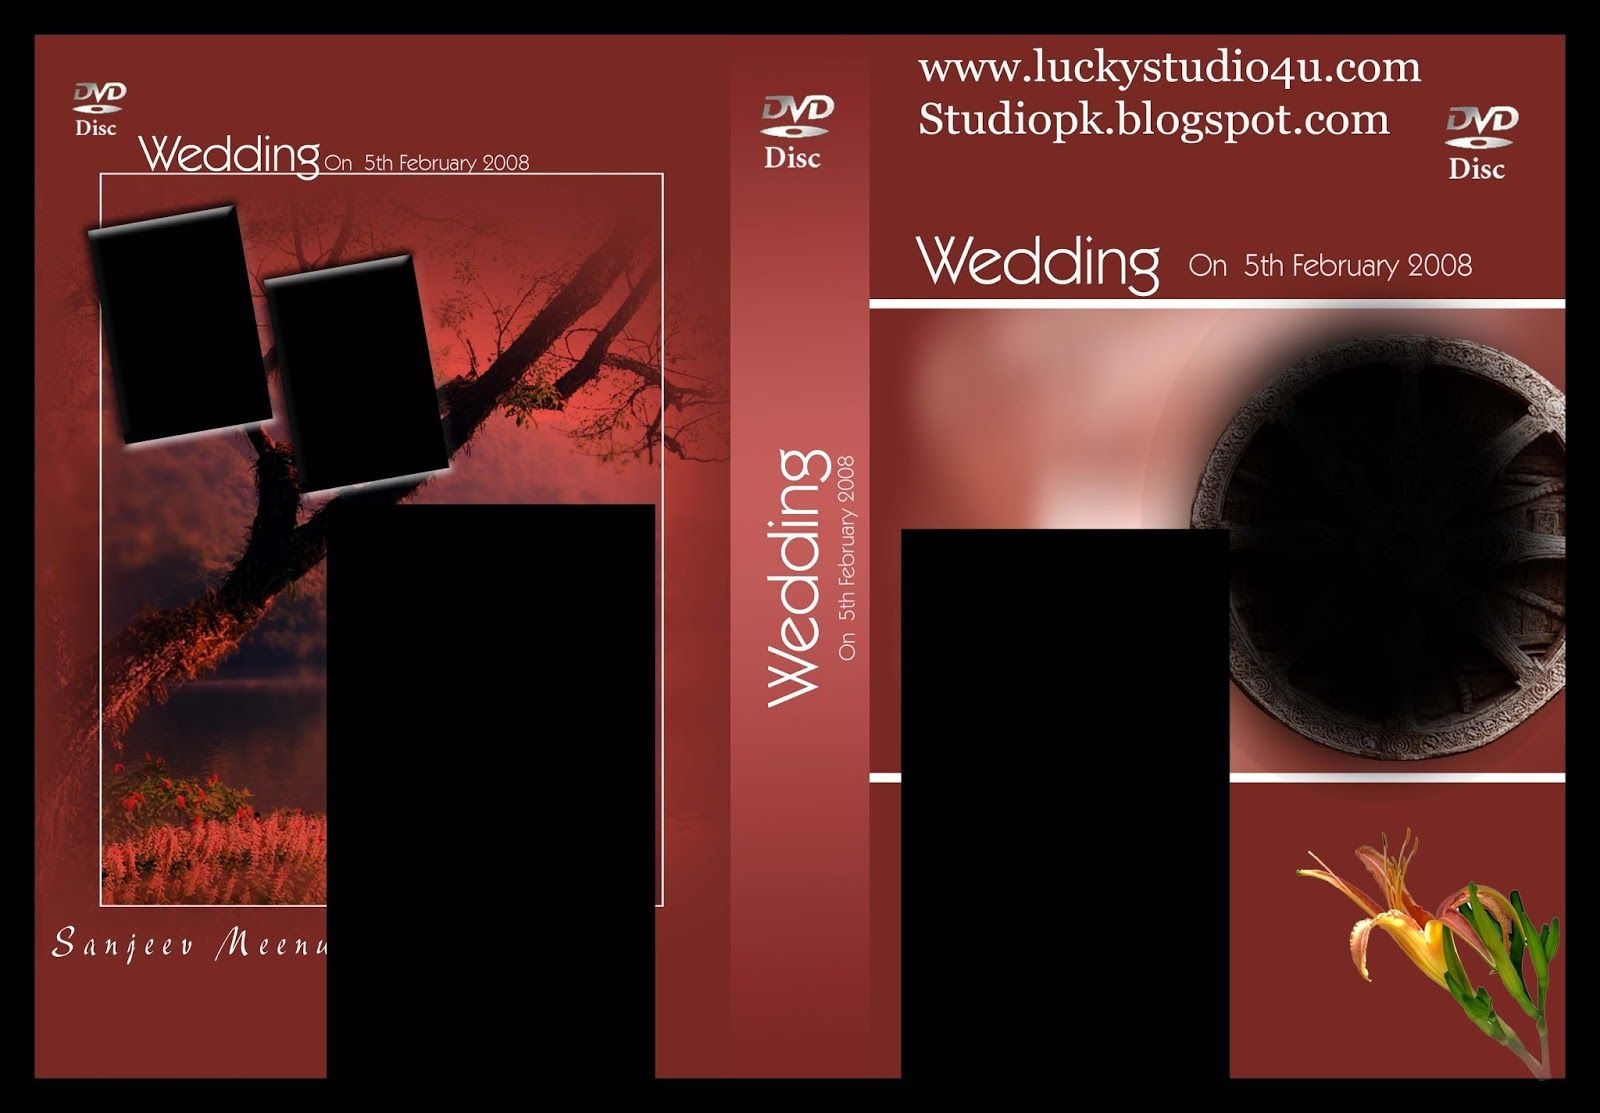 Wedding Dvd Cover Psd Free Download Wedding Dvd Cover Dvd Cover Design Wedding Dvd